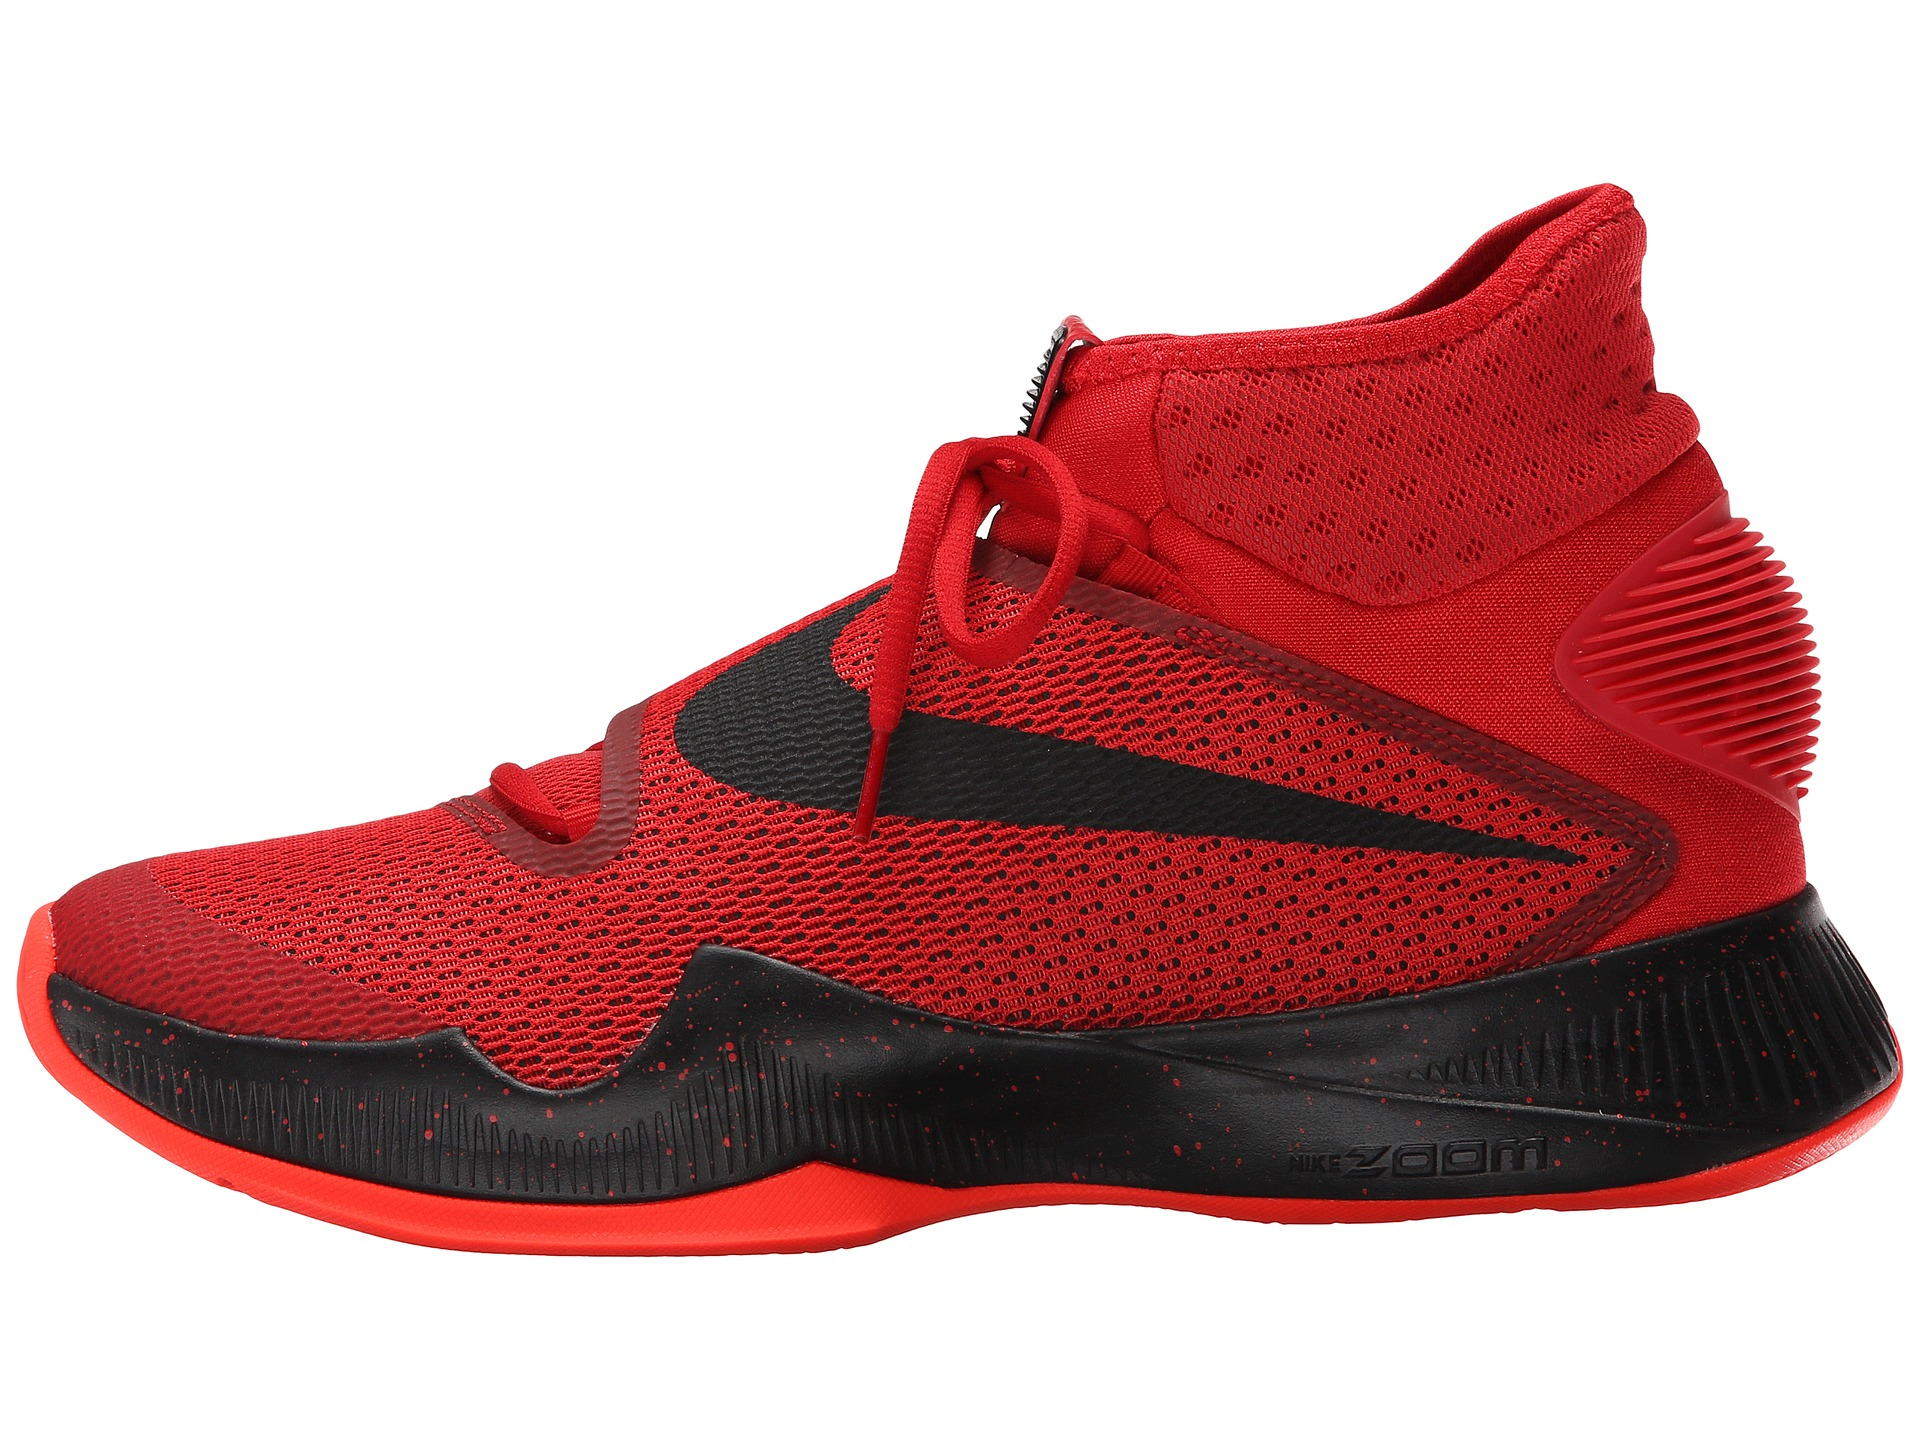 designer fashion 5d852 ef8ba ... switzerland lyst nike zoom hyperrev 2016 in red for men 358c8 ff6ca